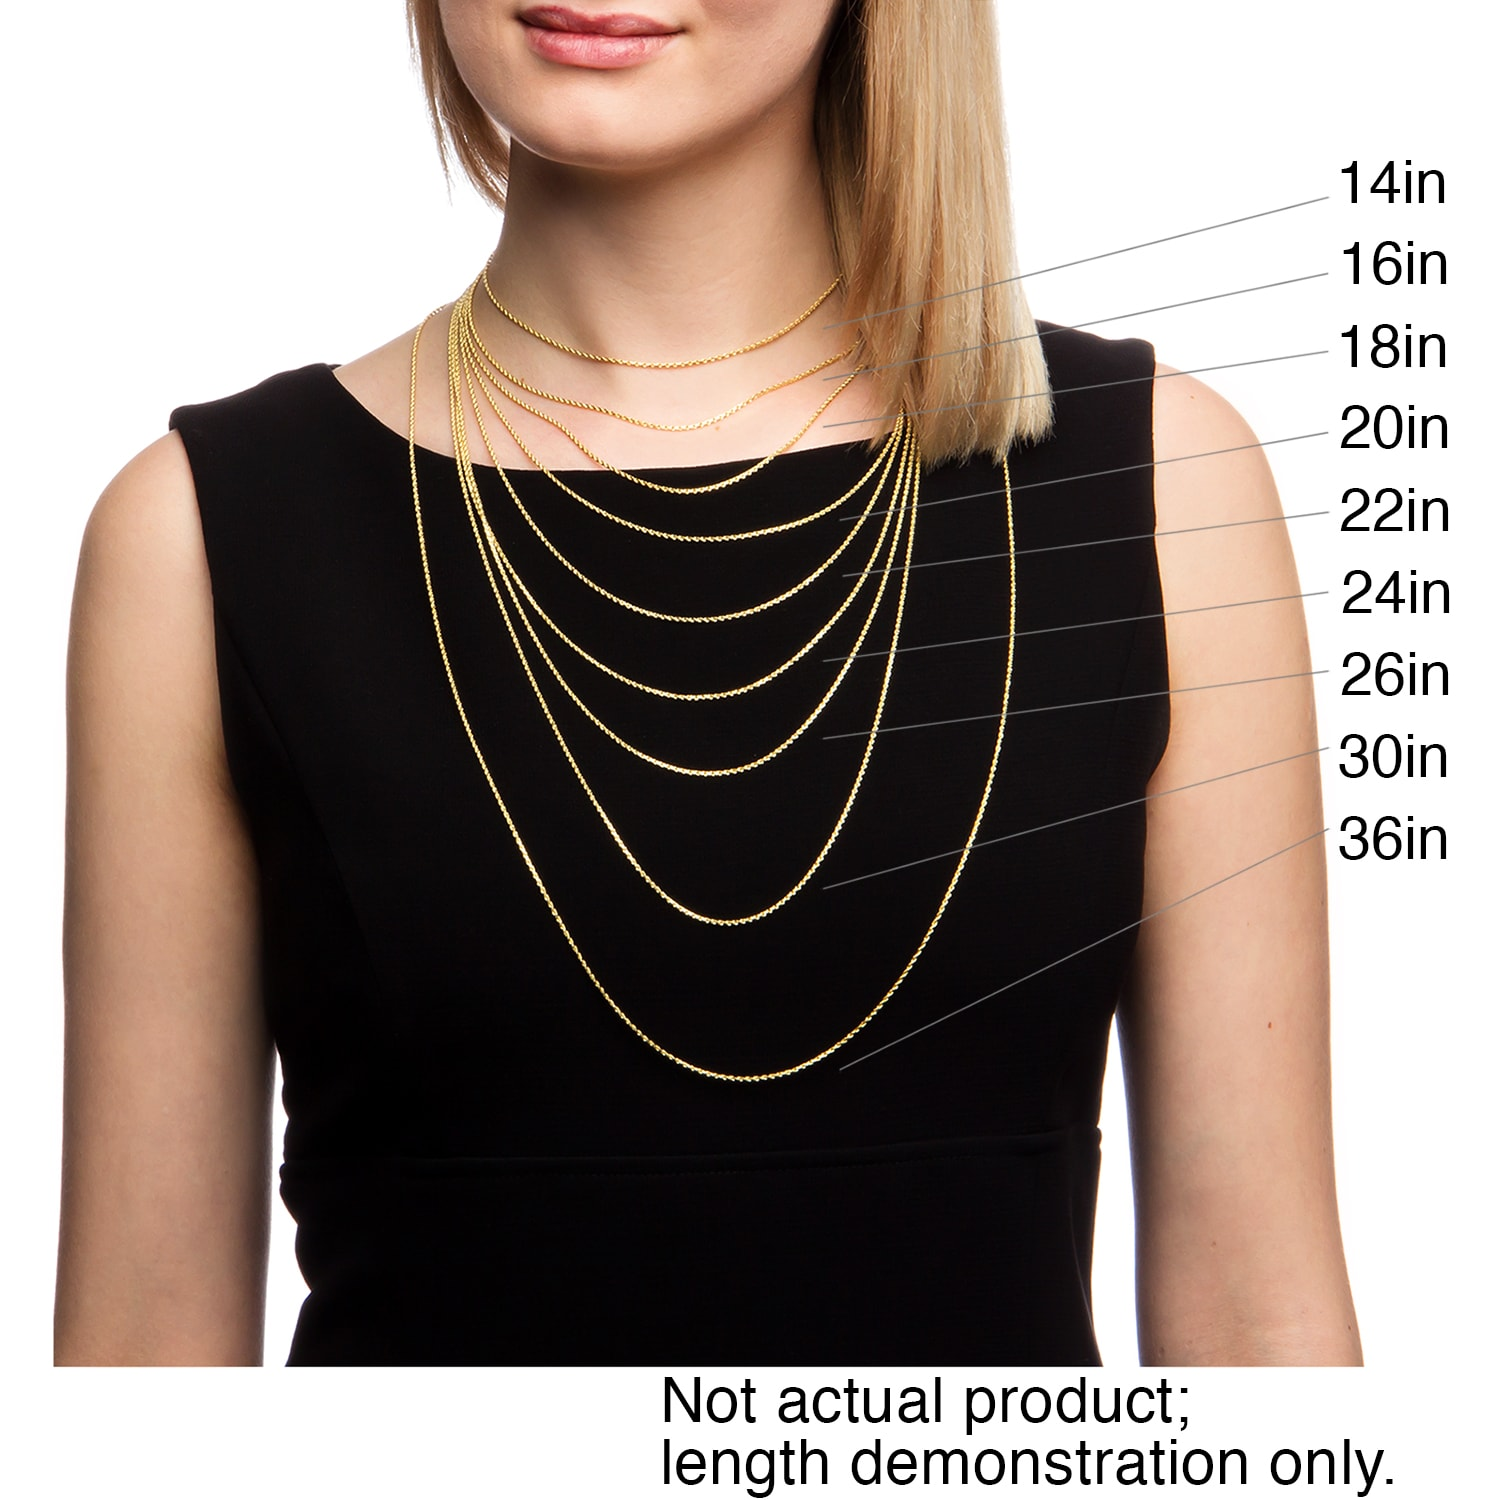 Pendant necklace chain length images pendant necklace chain length images fremada 14k yellow gold filled mariner link chain necklace 18 36 mozeypictures Image collections